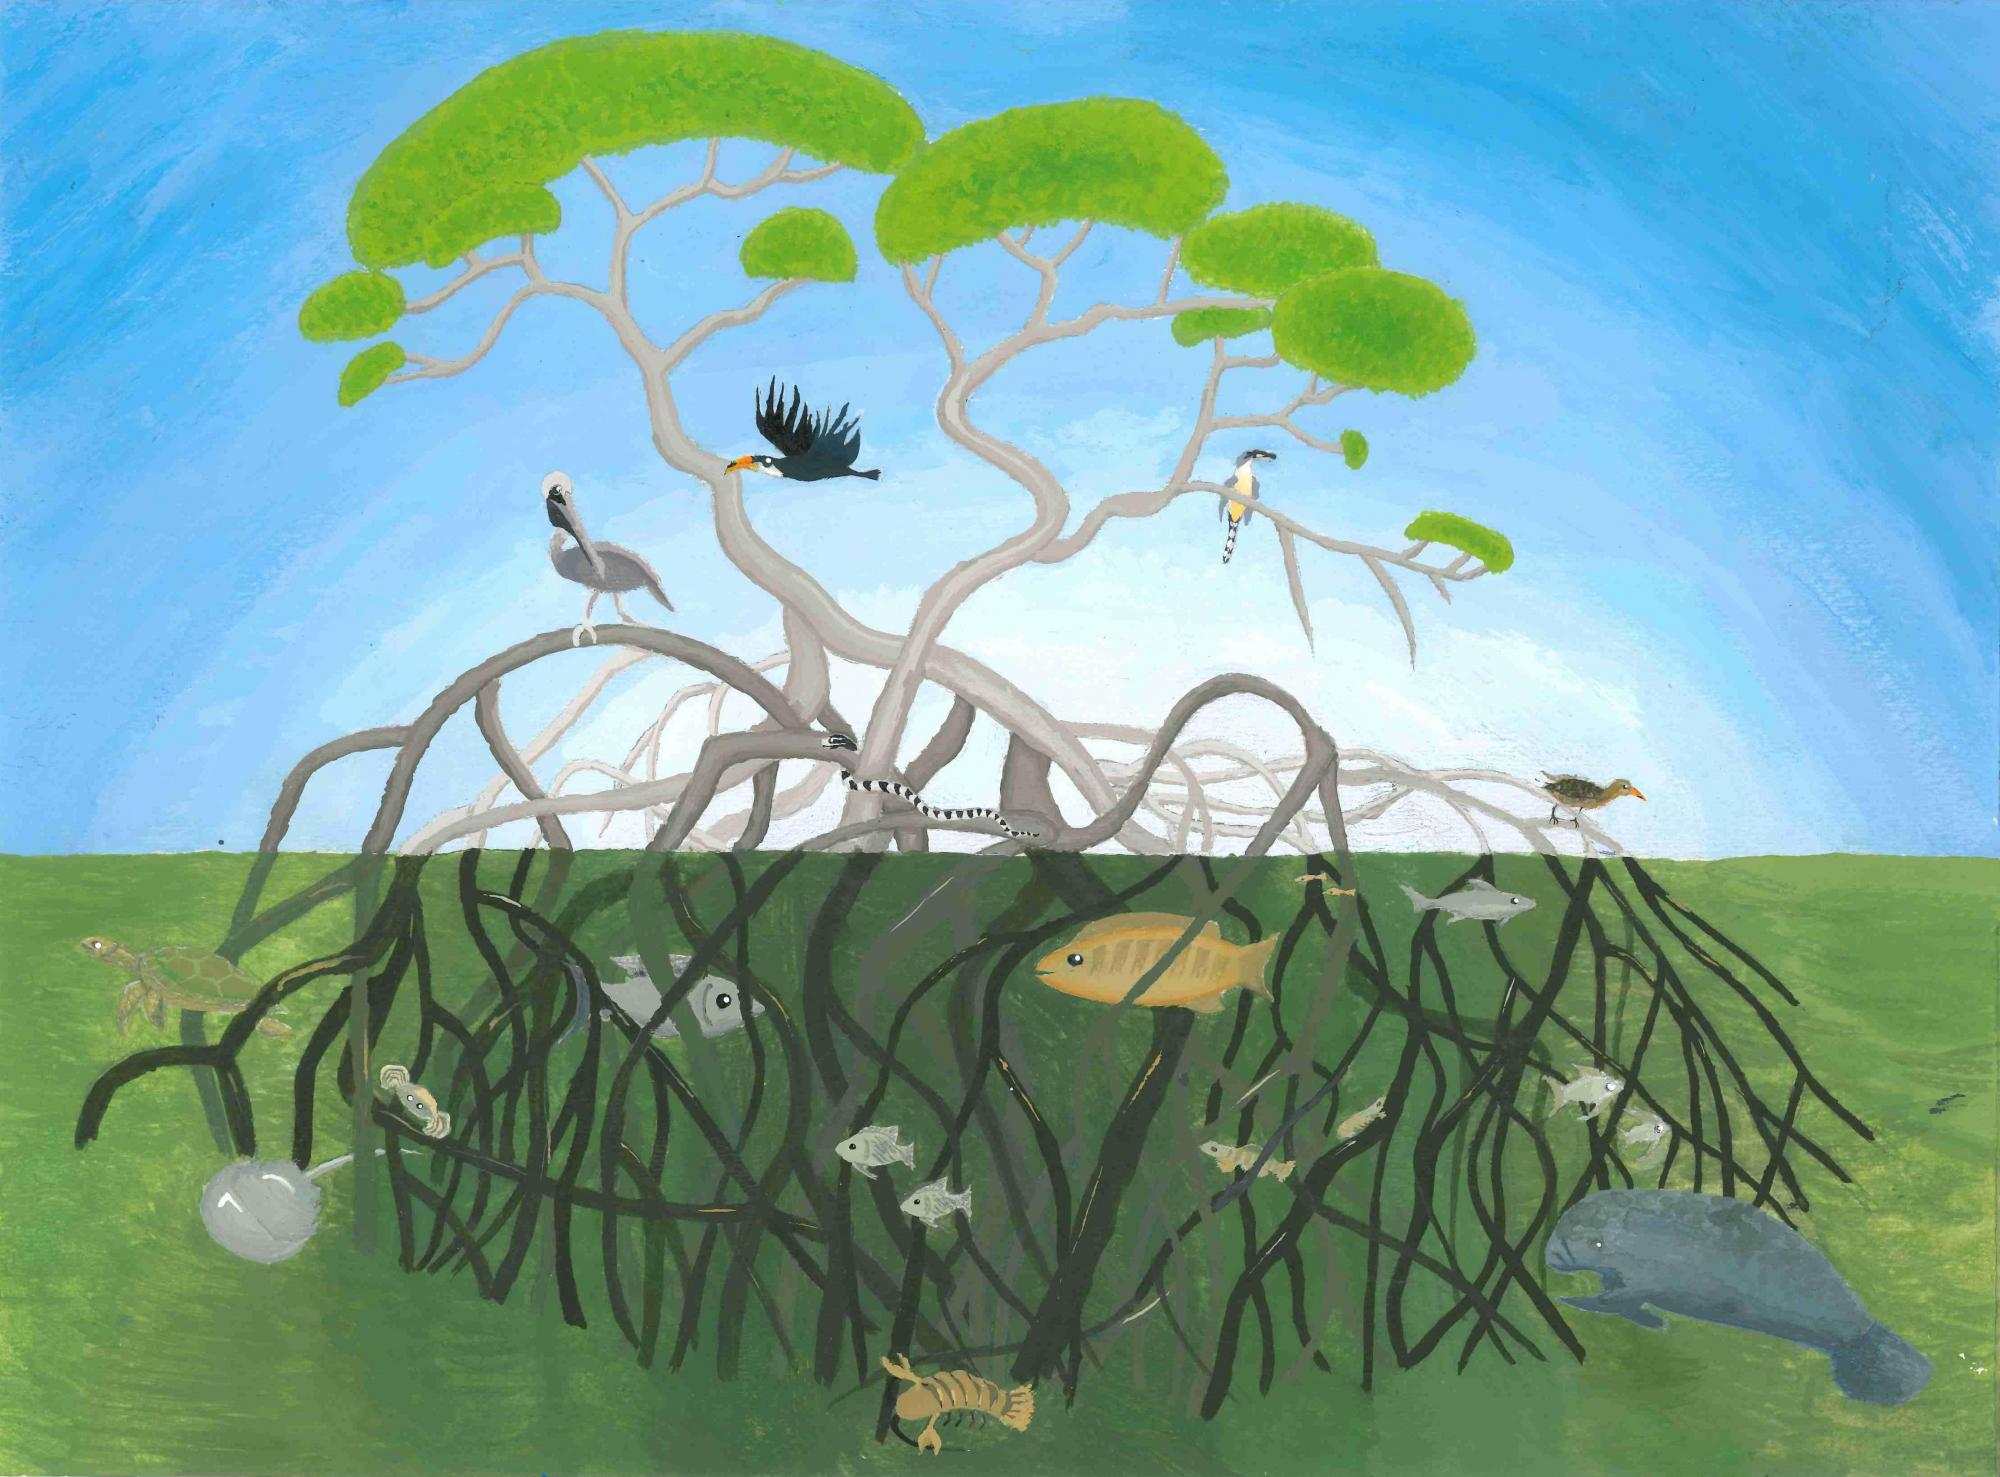 """This image is Nicole Li's artwork """"Tree of Life."""" The medium appears to be acrylic paint or pastel. The background is split between a blue sky with white light at the center, and green grass on the bottom half. A large tree takes up most of the foreground. The tree is comprised of many thin curvy branches that end in clusters of green leaves on top, and deep roots that sink into the grass but remain visible. In the grass, among the roots, are painted fish of various sizes; on the top half of the tree, which touches the sky, are several birds perching in the branches, one flying, and a snake coiled around a branch."""